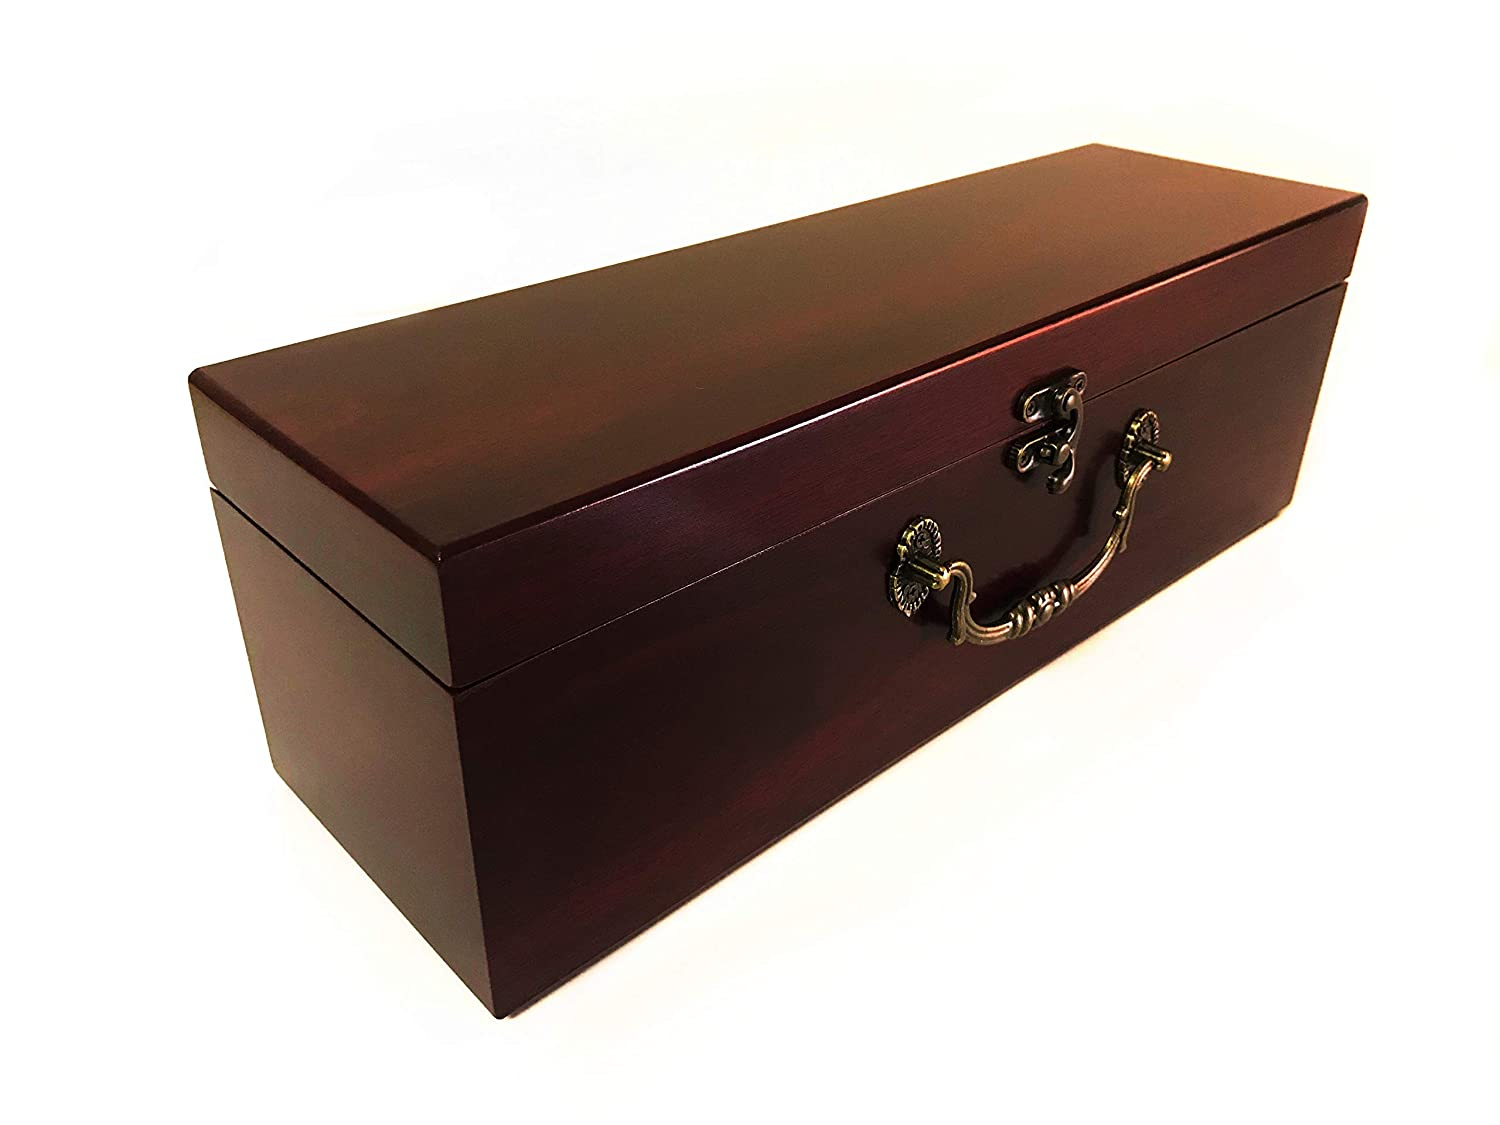 Case with Accessories ASC Wine Presentation Box Wine Gift Box Velvet Lined Detailed Ornate Metal Handle and Clasp